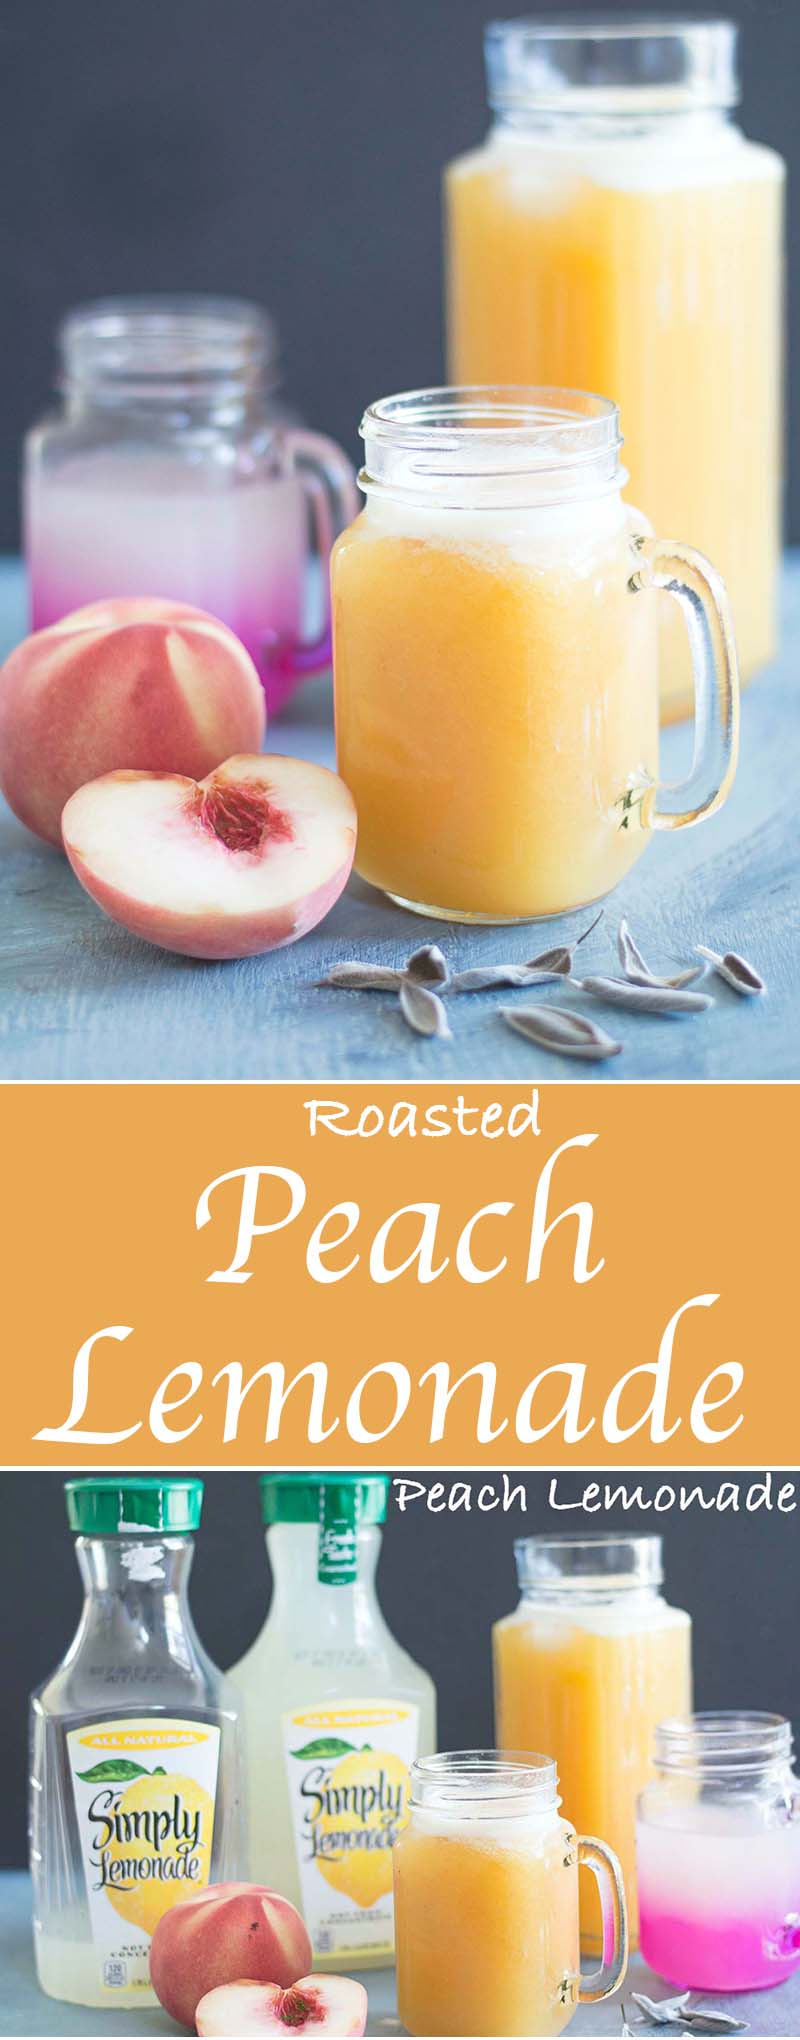 Easy Roasted peach lemonade recipe with sage. I used white peaches making them the perfect summer drinks for your outdoor parties. Using Simply Lemonade #ad #alwaysdelicious #lemonade #summerlemonade #summerdrinks #peaches #parties #vegan #vegetarian #drinks #refreshing